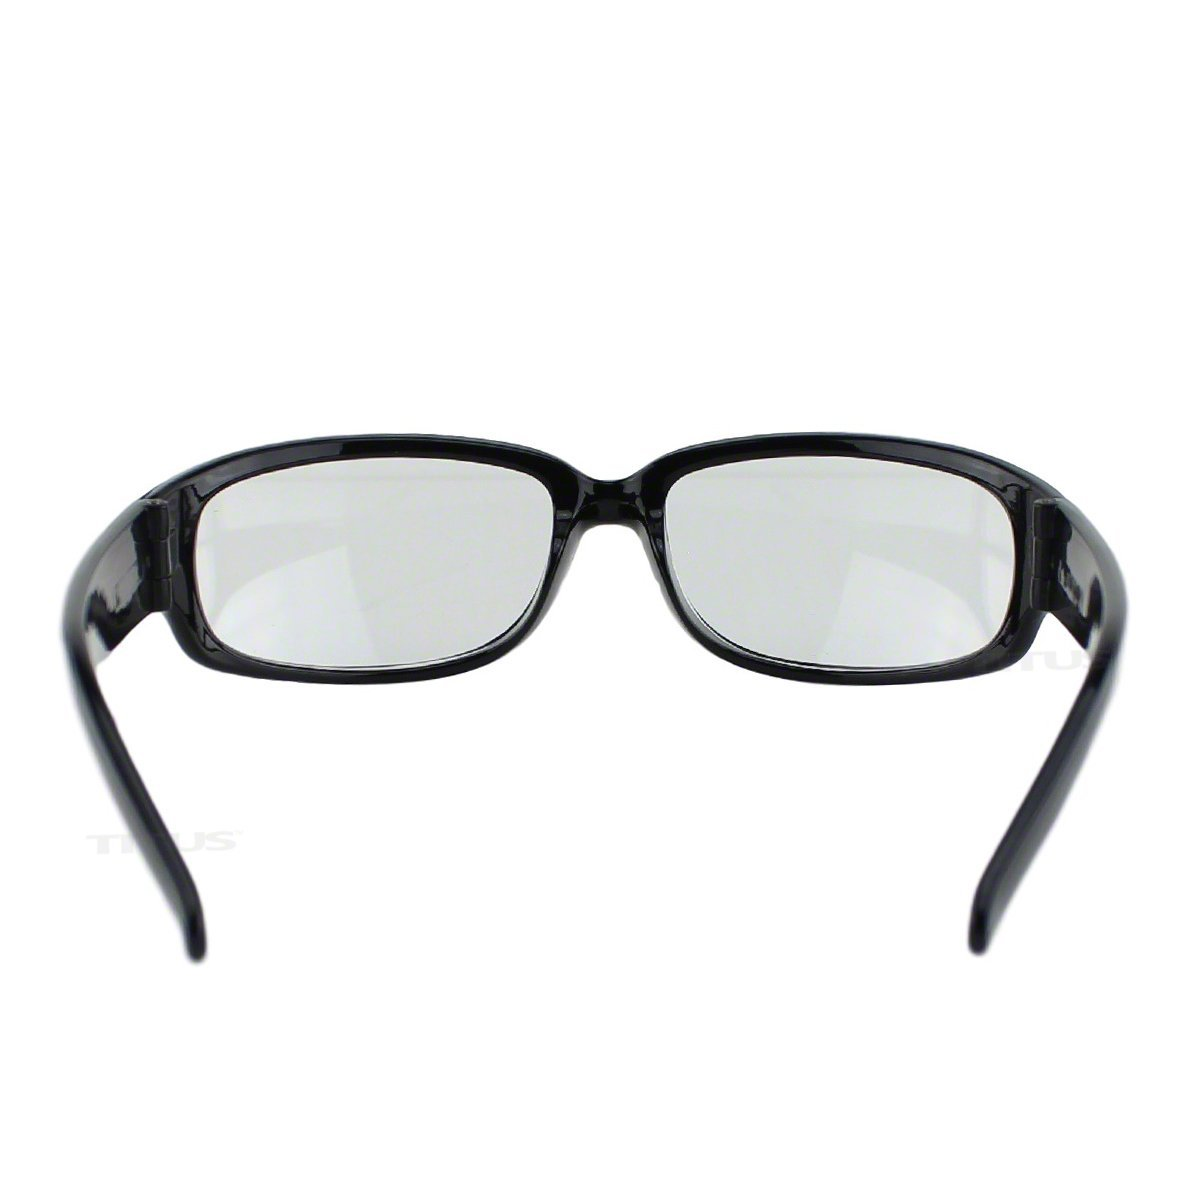 Titus G1 Bold Classic Sports Safety Glasses Standard, Standard